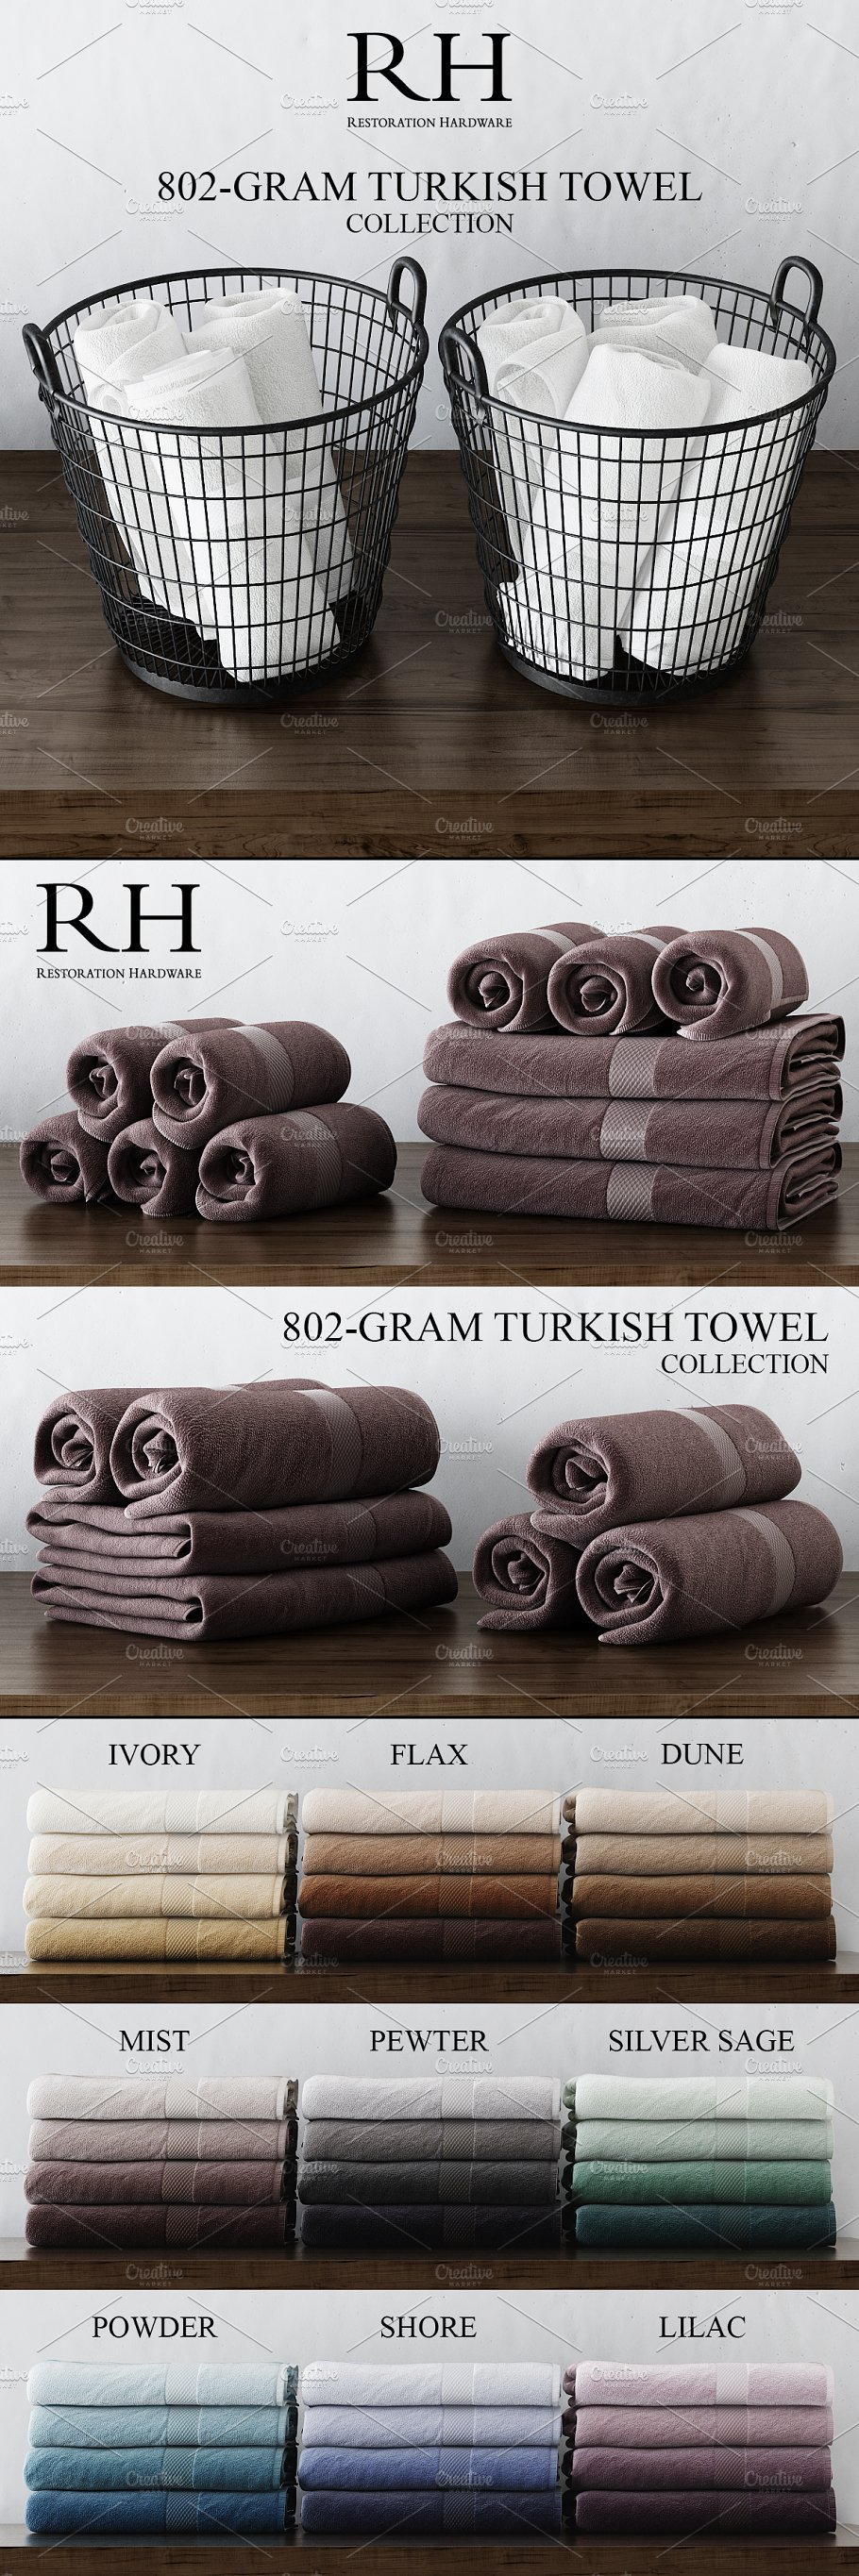 Rh 802 Gram Turkish Towel Collection Objects Creative Market